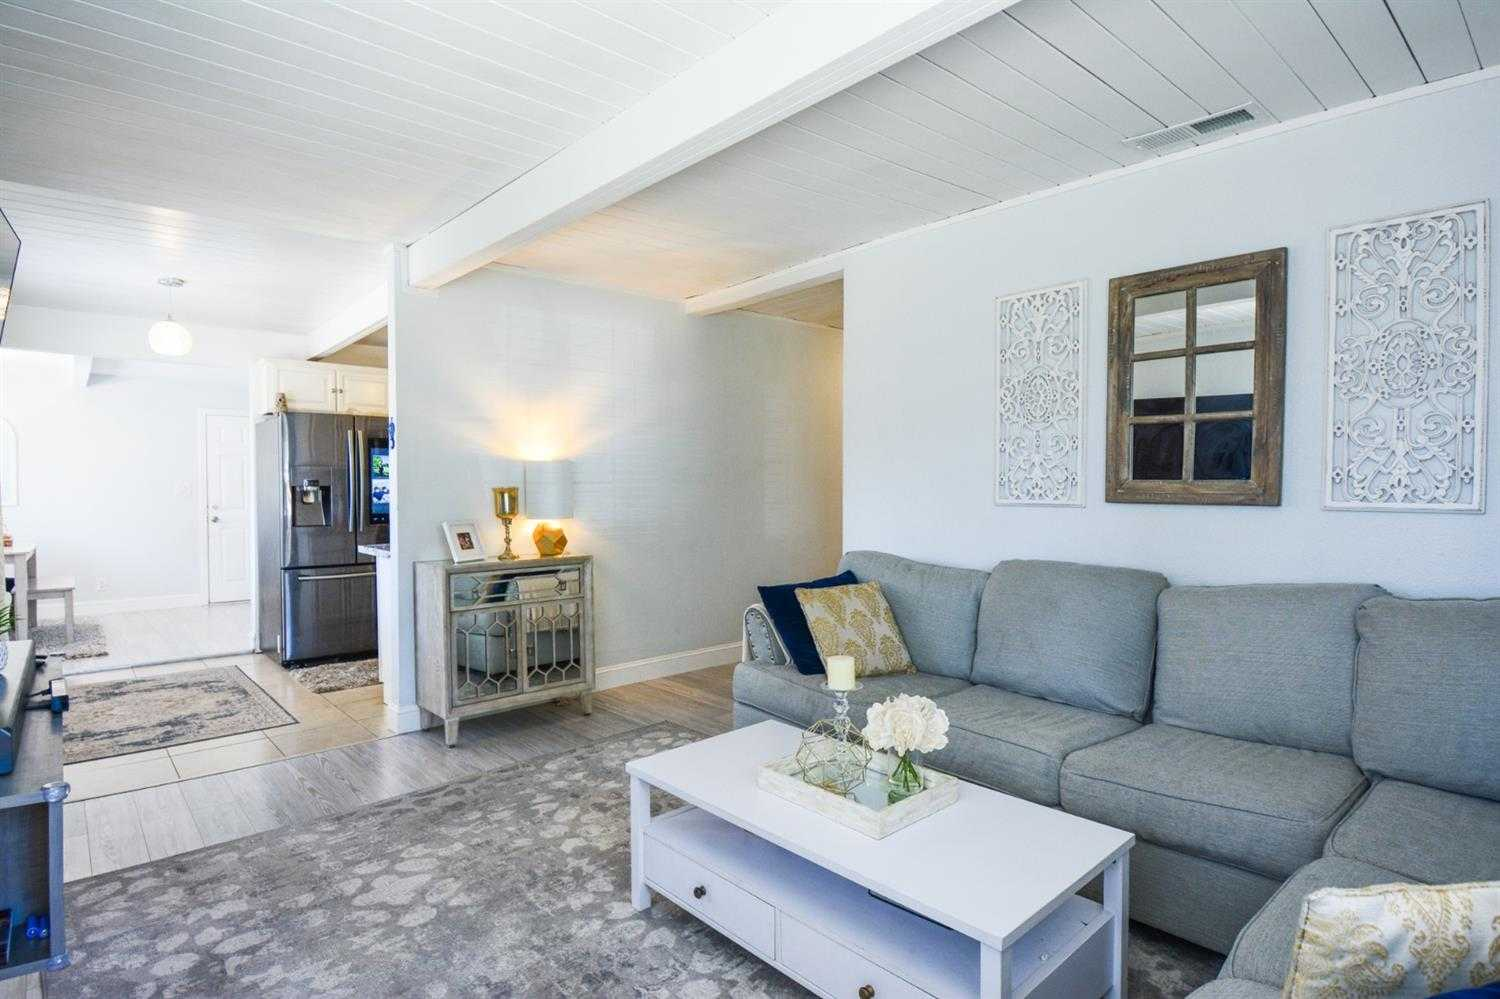 $369,900 - 3Br/1Ba -  for Sale in West Sacramento